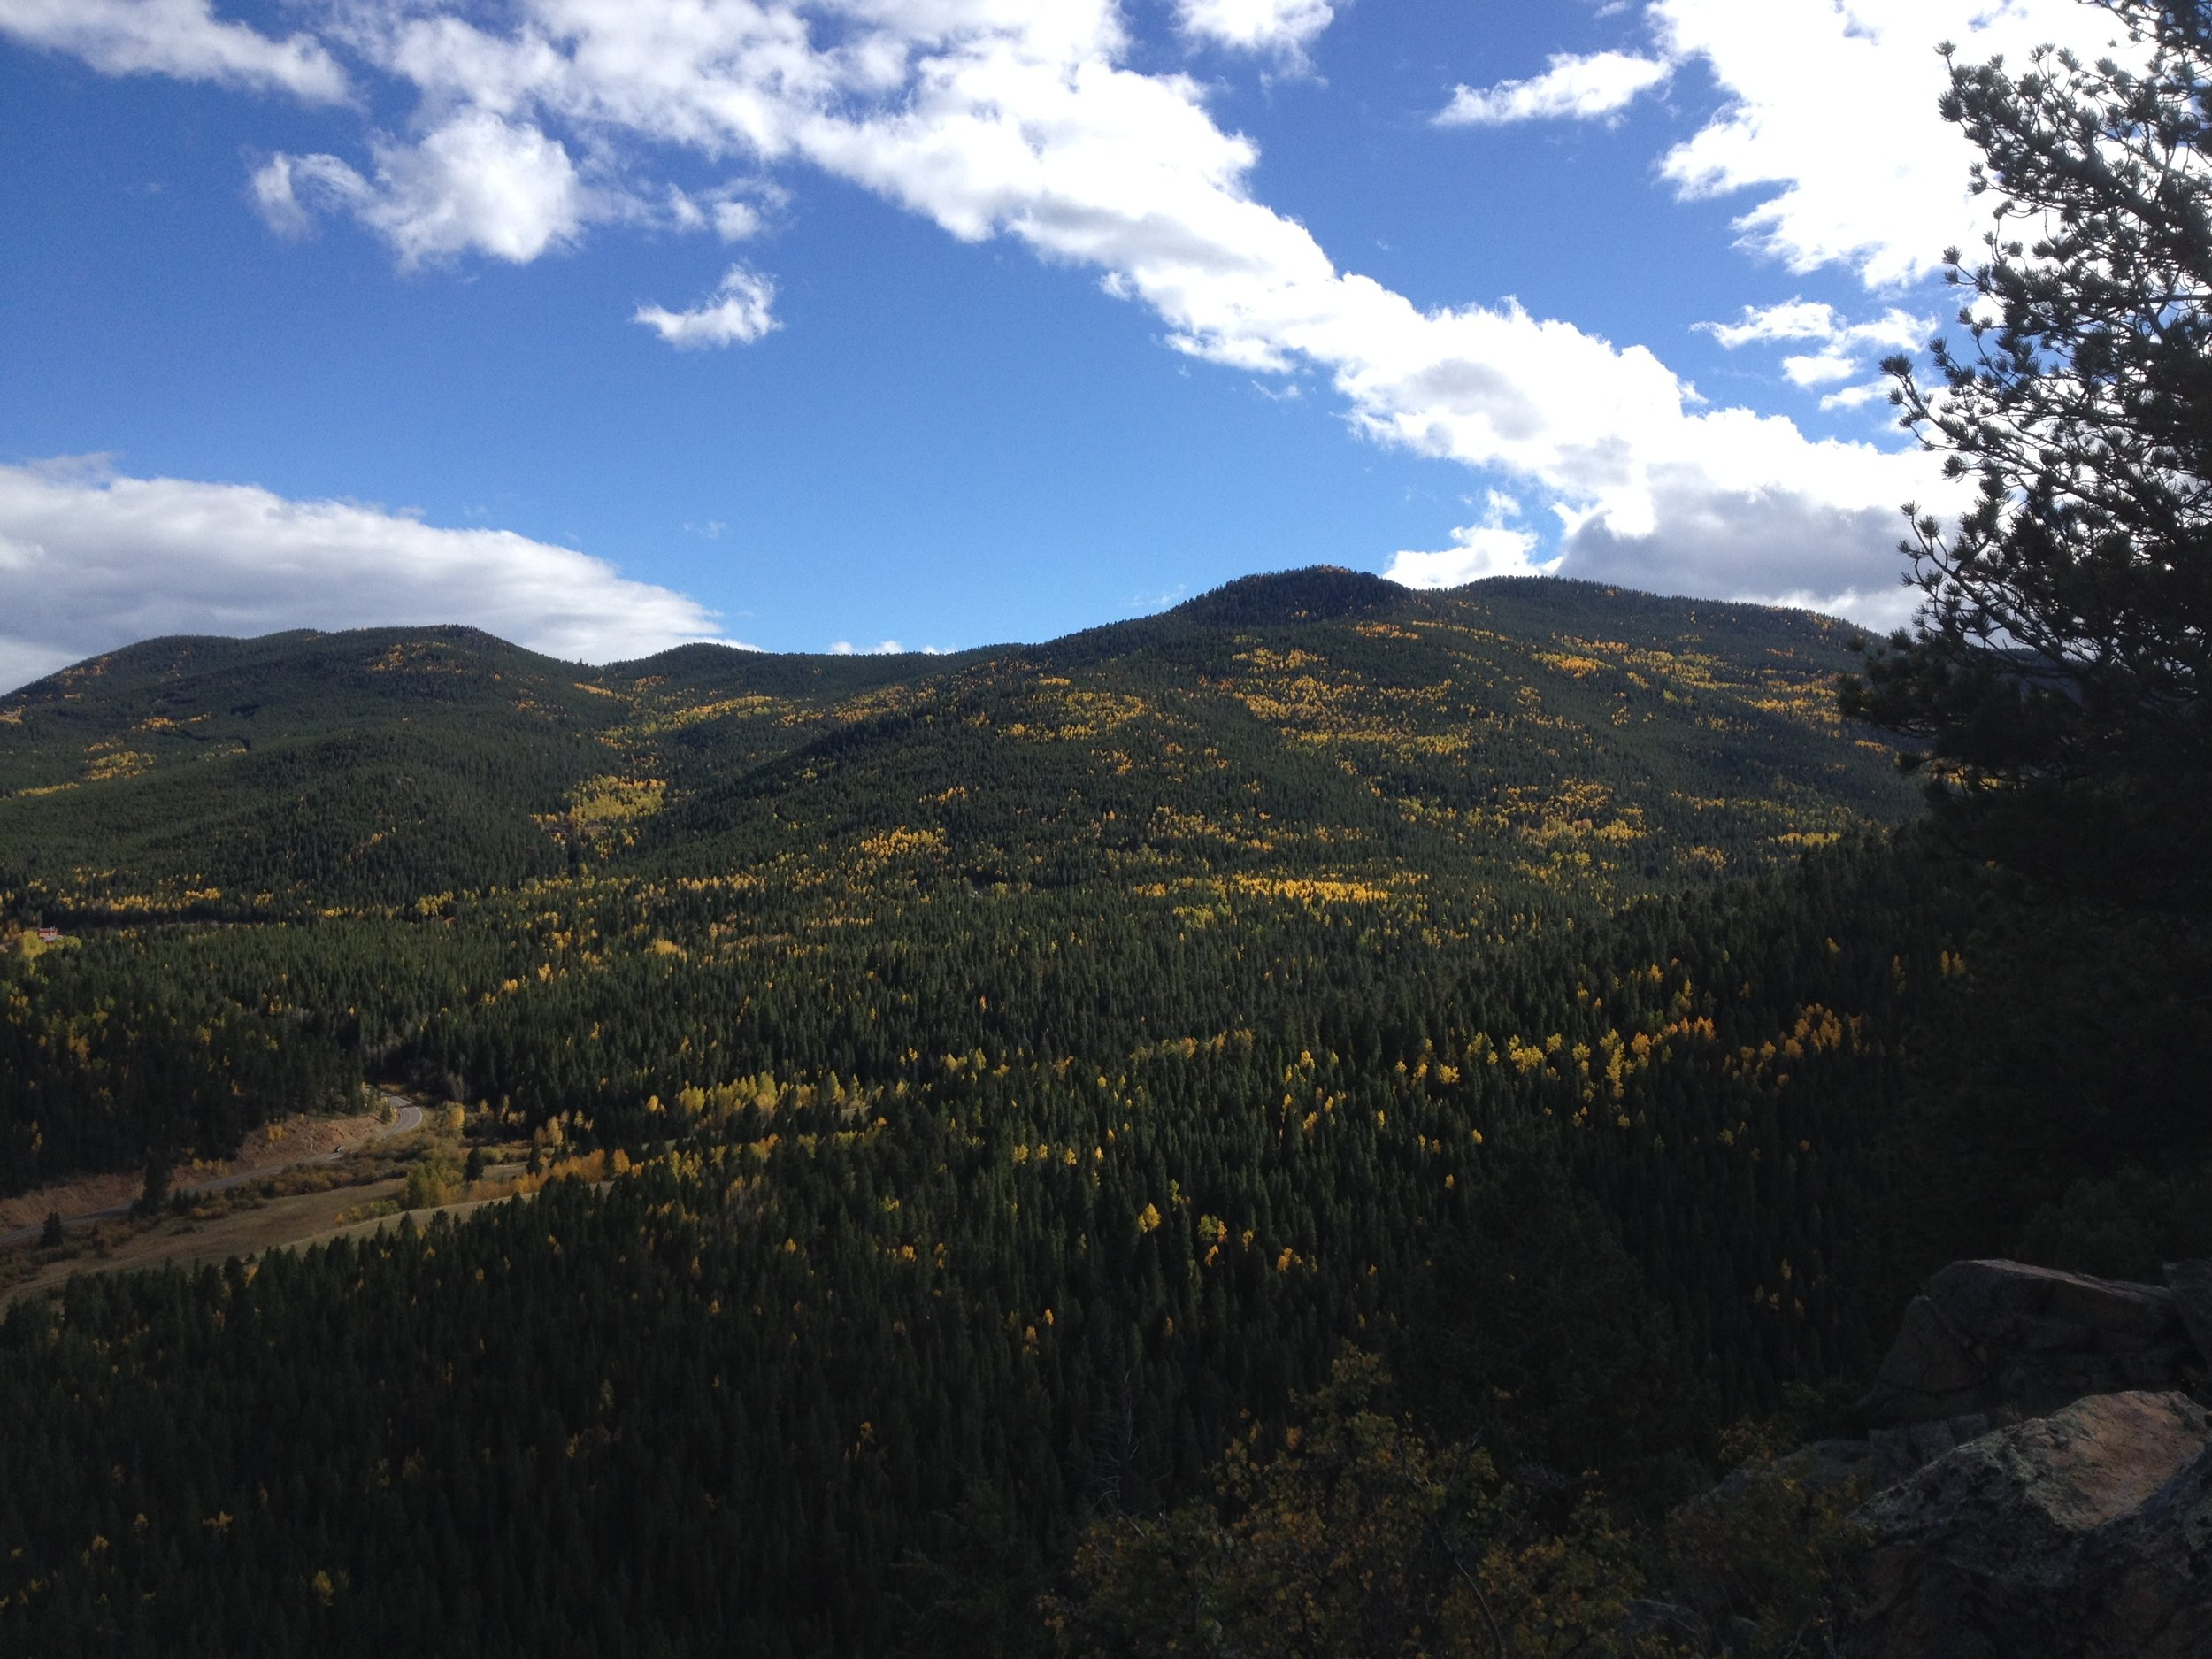 Colorado has several outfitters providing hunting and fishing guide services. Colorado Outfitter Attorney Nathaniel Gilbert helps guides and outfitters form their business, draft leases, manage employee relations, and negotiate hunt contracts.